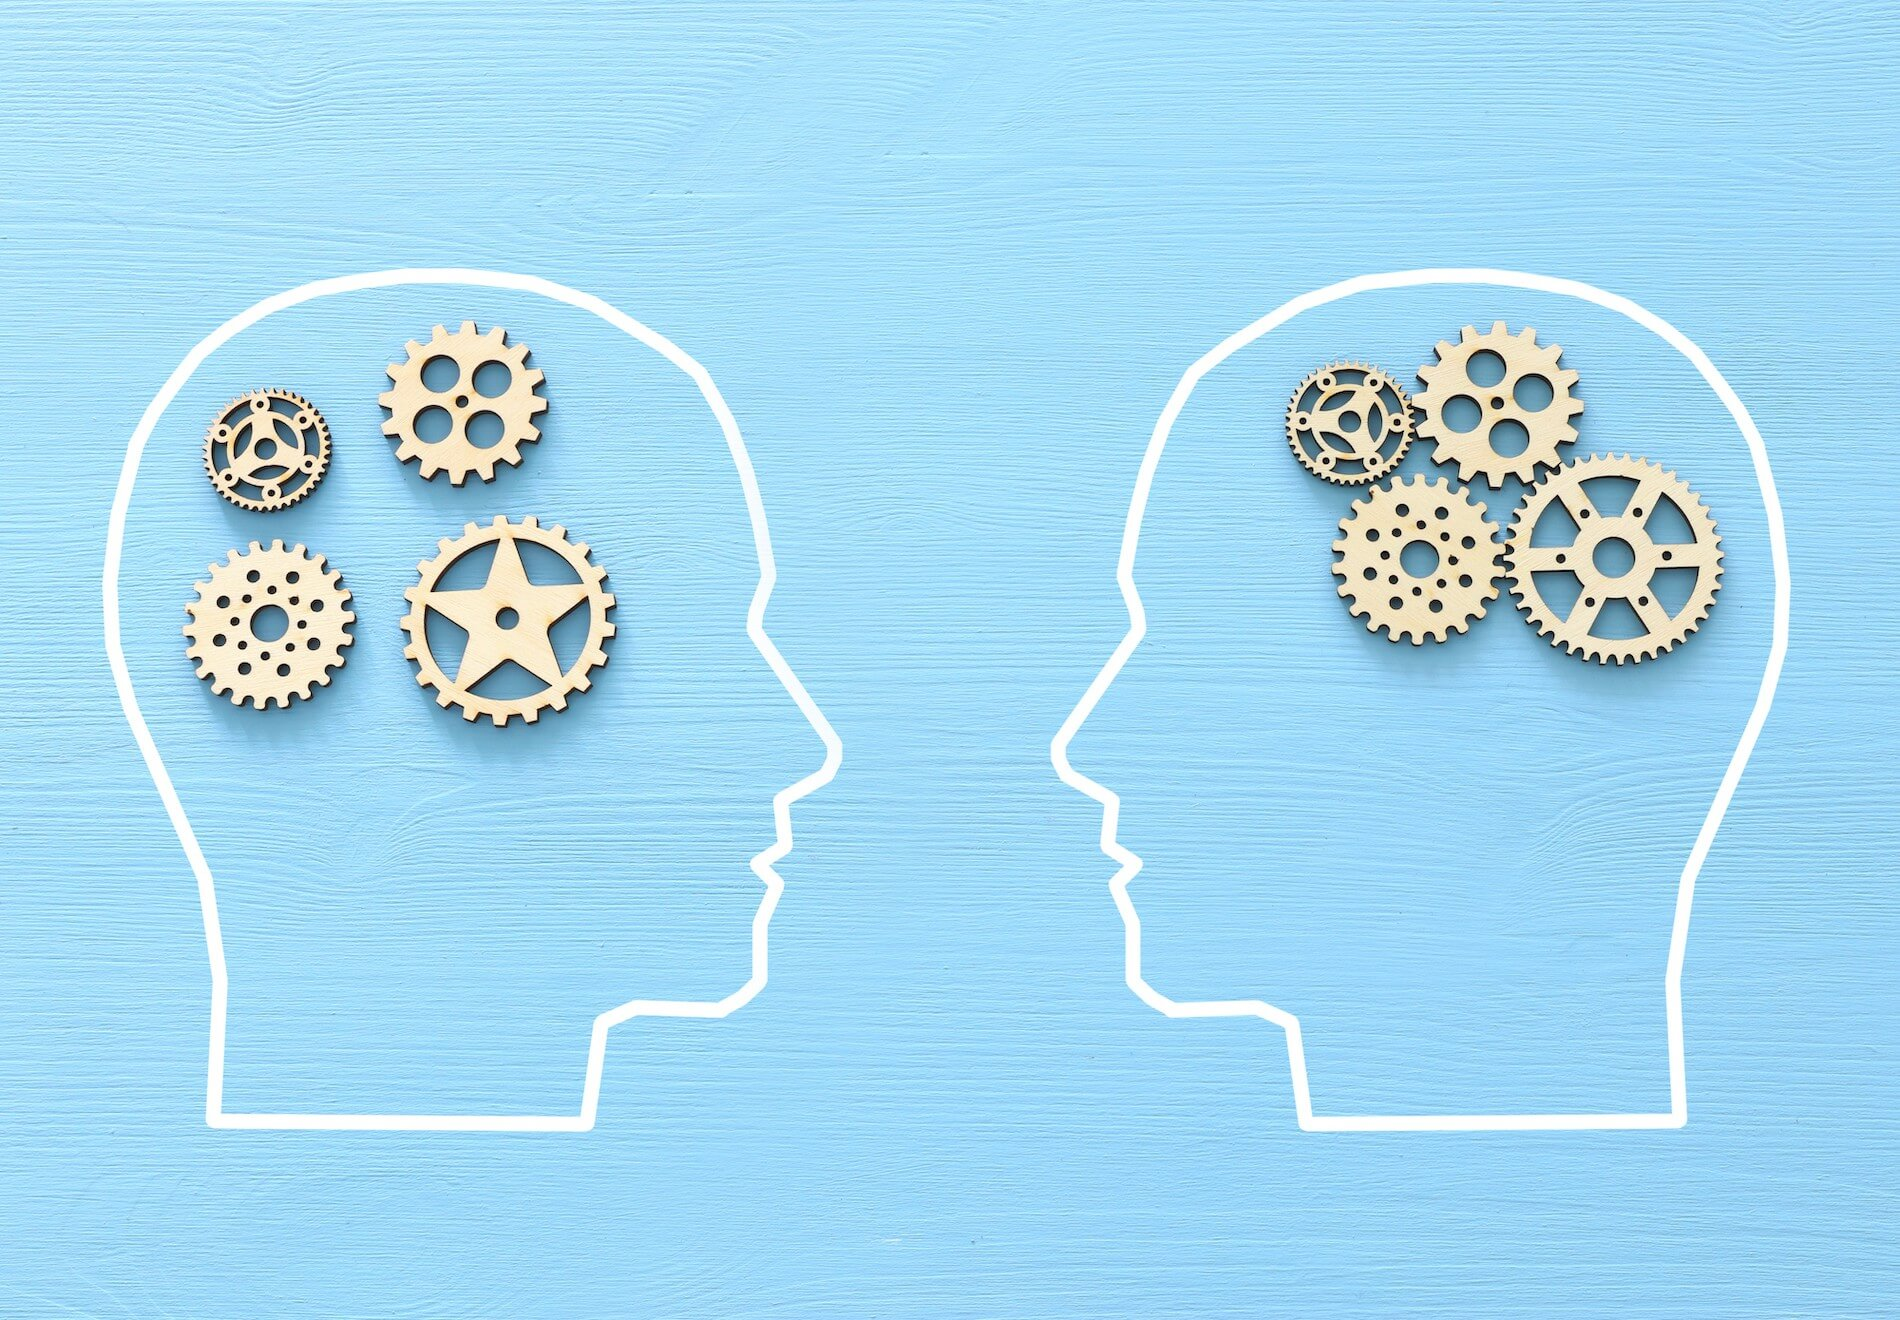 two cartoon heads with several gear wheels in the place of their brains looking at each other